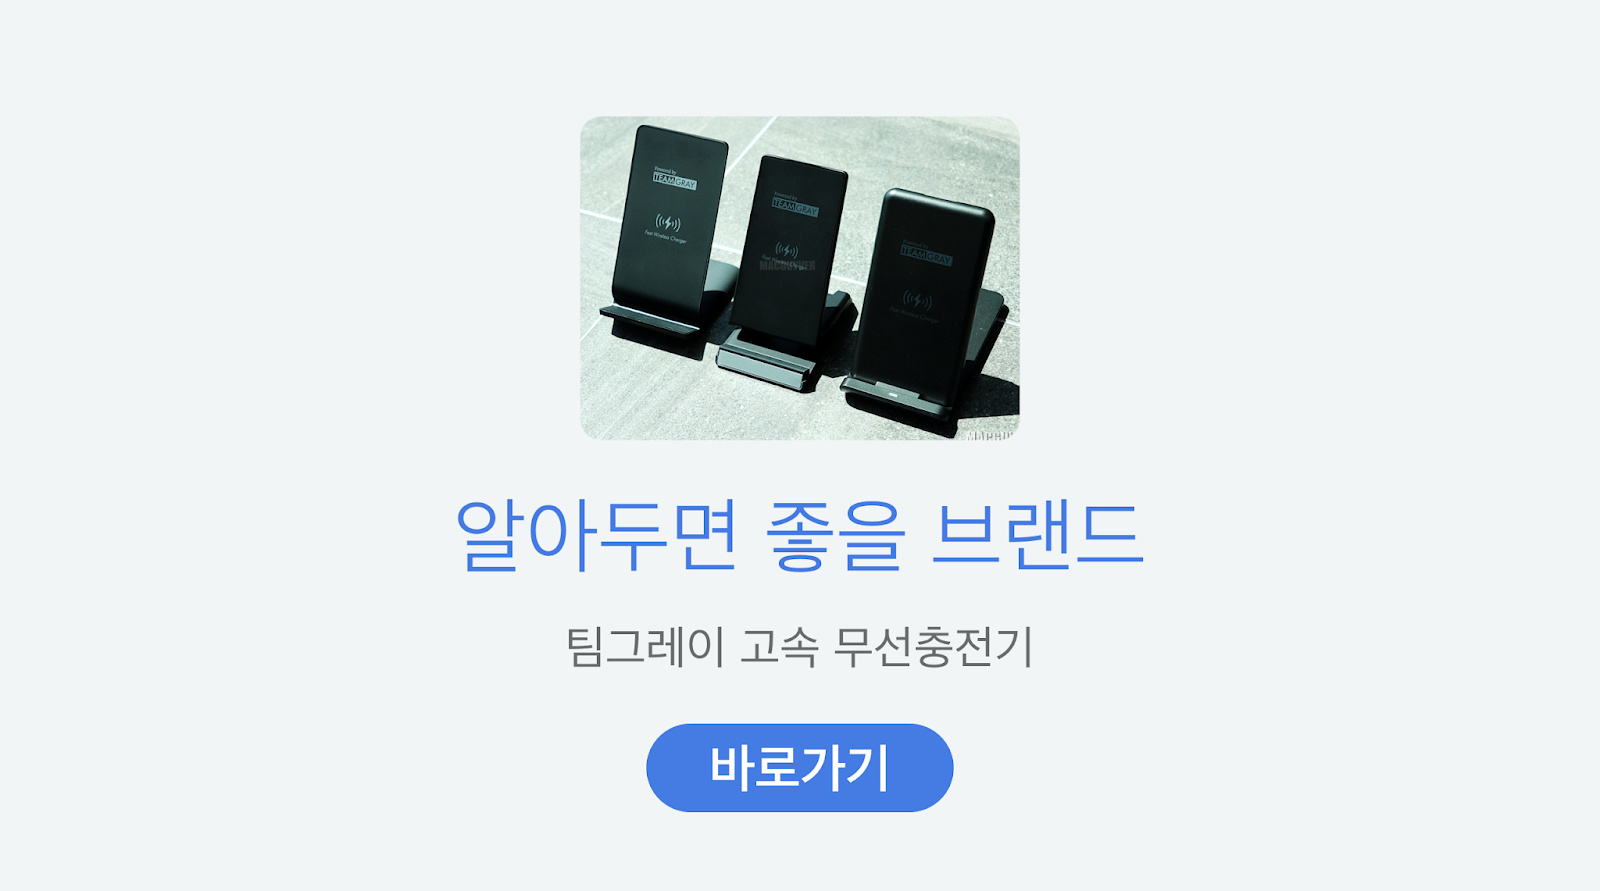 http://smartstore.naver.com/teamgray/category/50000205?cp=1